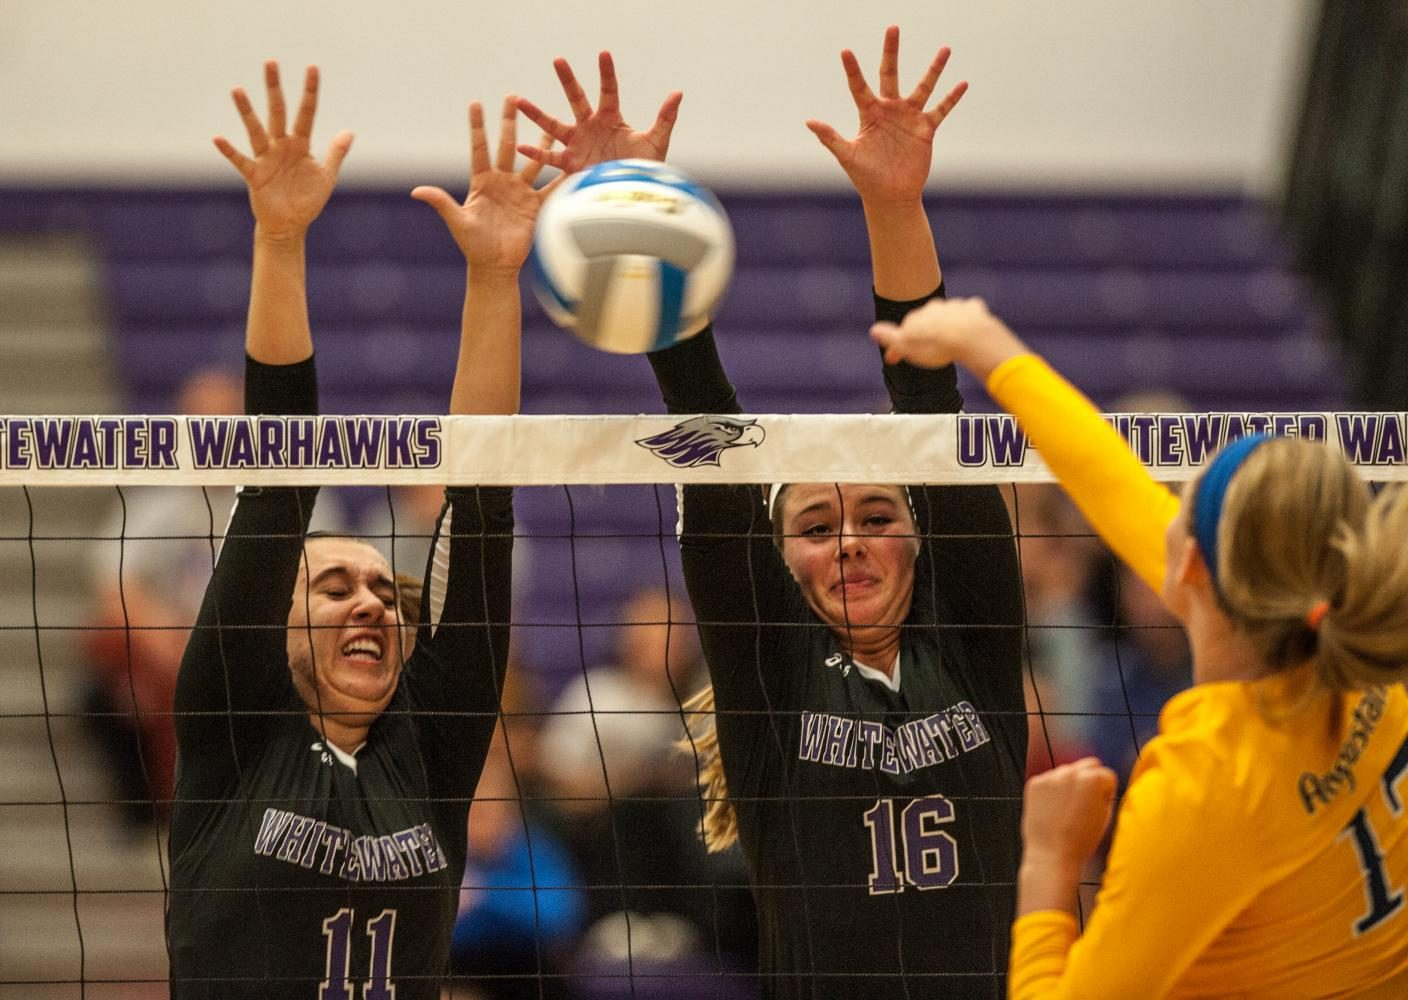 Senior+middle+hitter+Courtney+Wagner+%2811%29+and+sophomore+outside+hitter+Rachel+Butterfield+%2816%29+team+up+for+a+block+against+Augustana.+Wagner+led+the+Warhawks+with+eight+blocks+and+was+one+of+two+Warhawks+to+make+the+All-Tournament+team.+She+was+joined+by+junior+libero+Brittany+Robinson